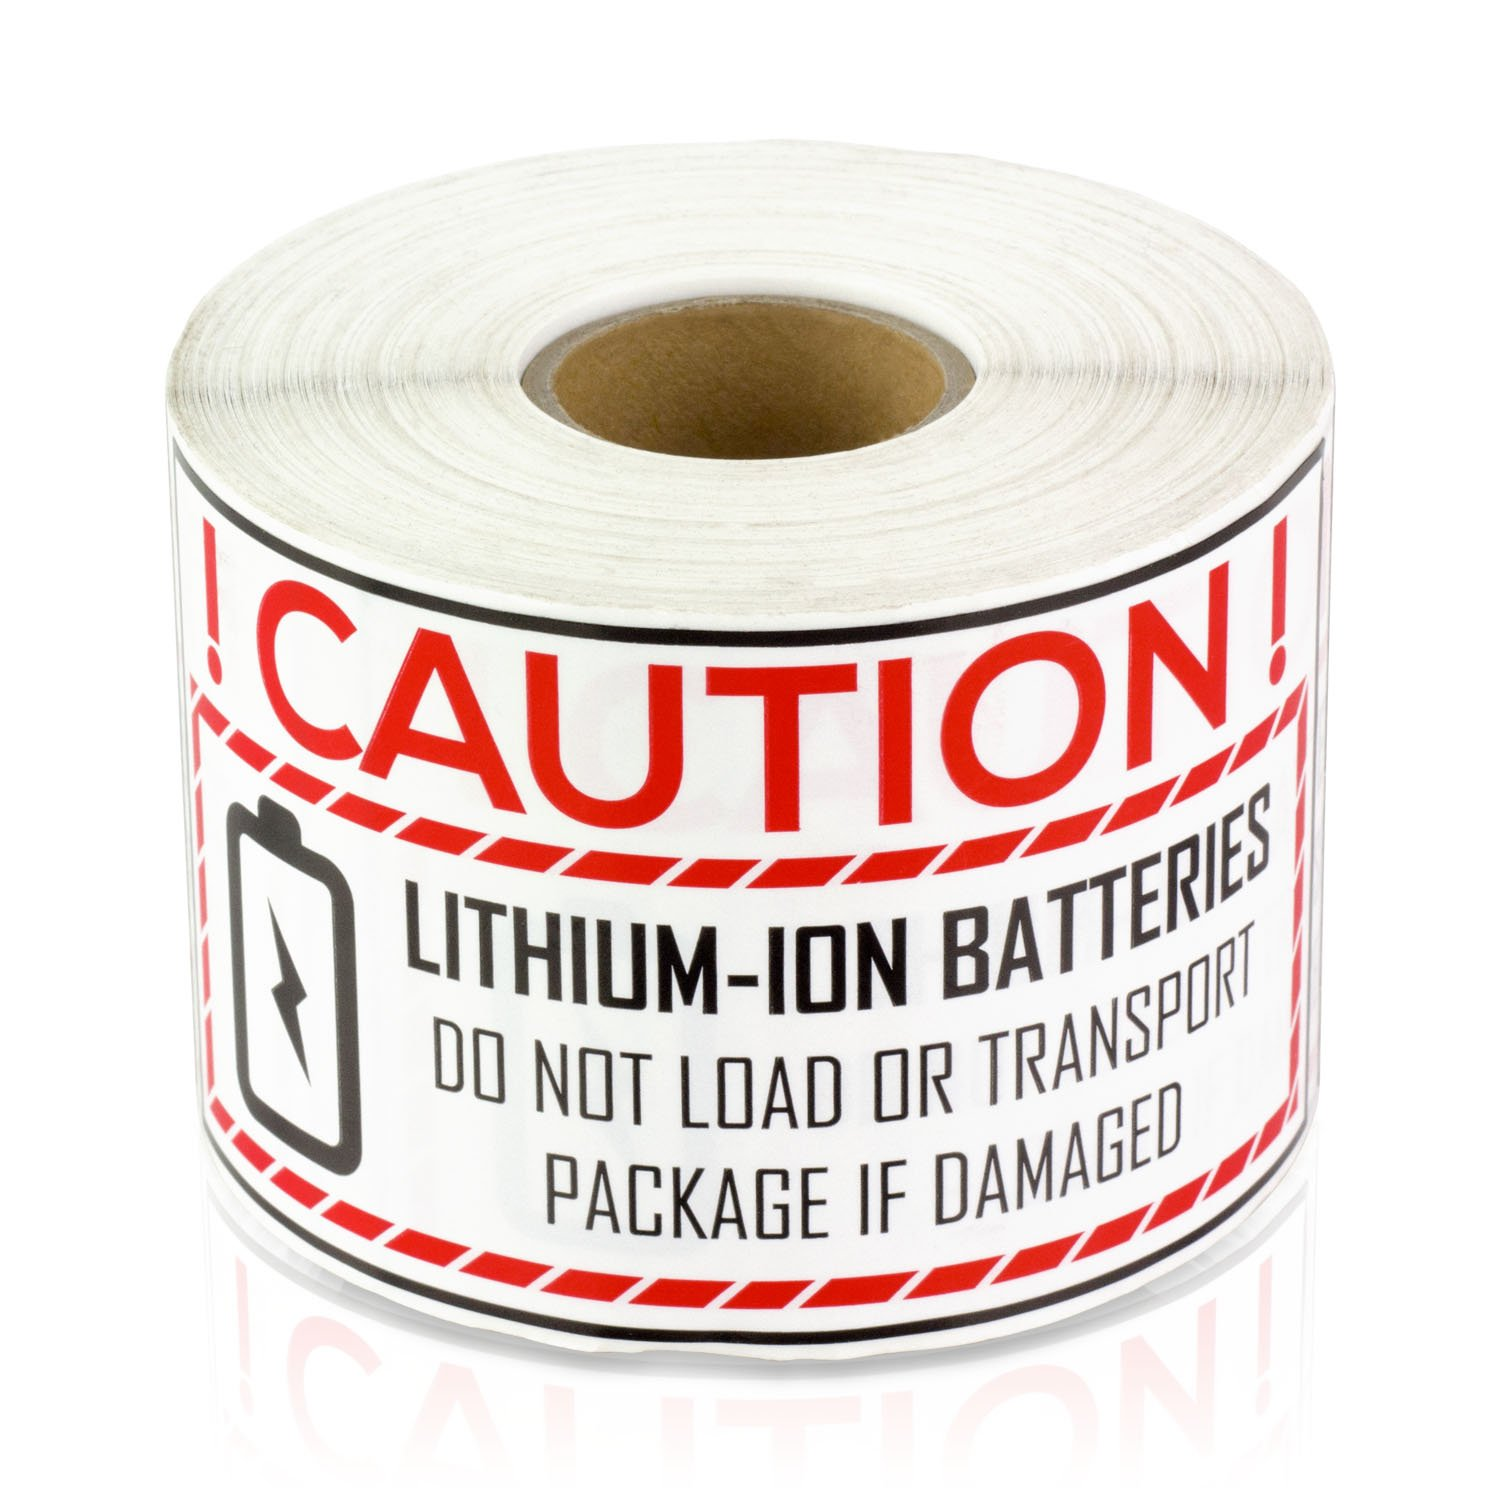 """OfficeSmartLabels Lithium Ion Battery Caution Handling 2"""" x 4"""" LabelsSticker (300 Labels per roll / 1 roll)"""